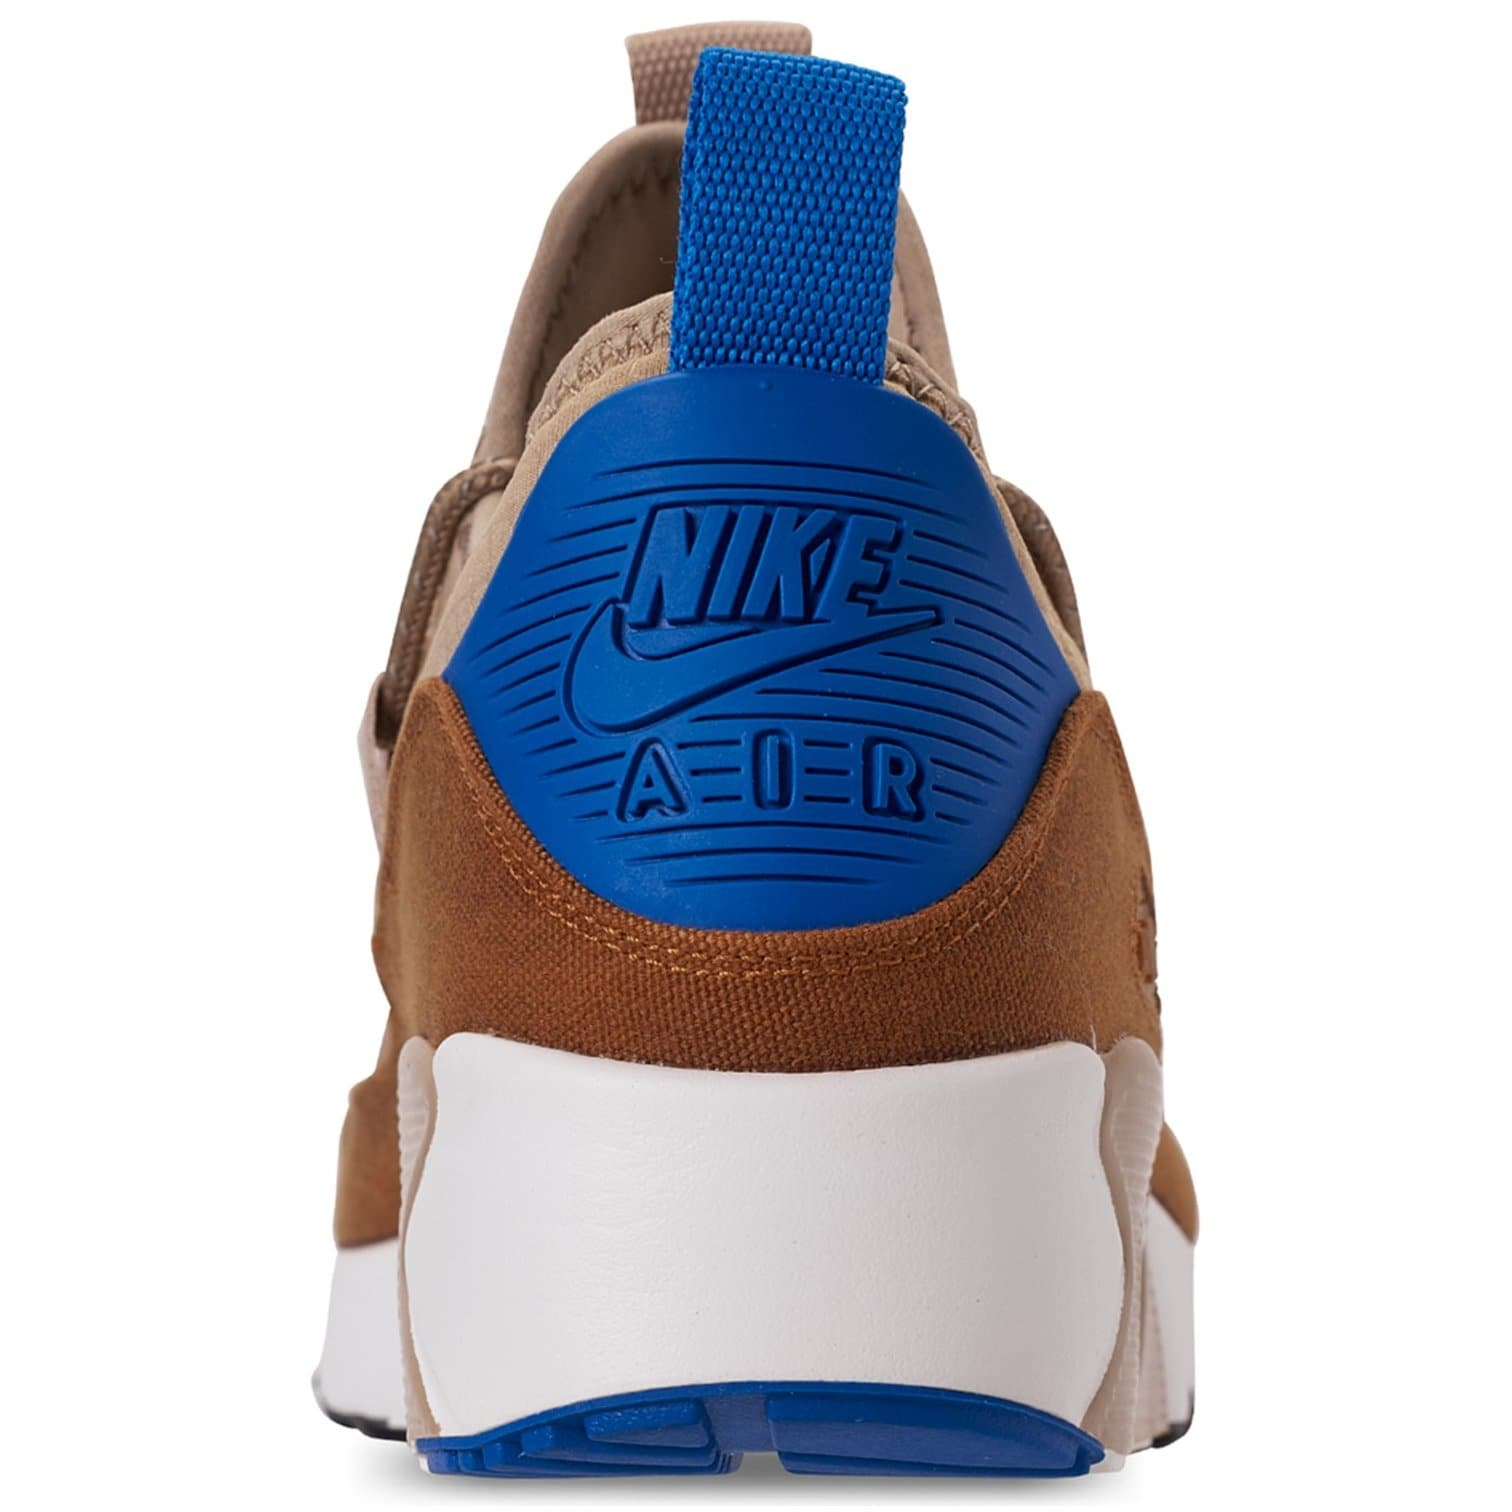 check out af507 8887a Shop Nike Men s Air Max 90 EZ Dessert Ochre (AO1745 700) - Free Shipping  Today - Overstock - 25557649